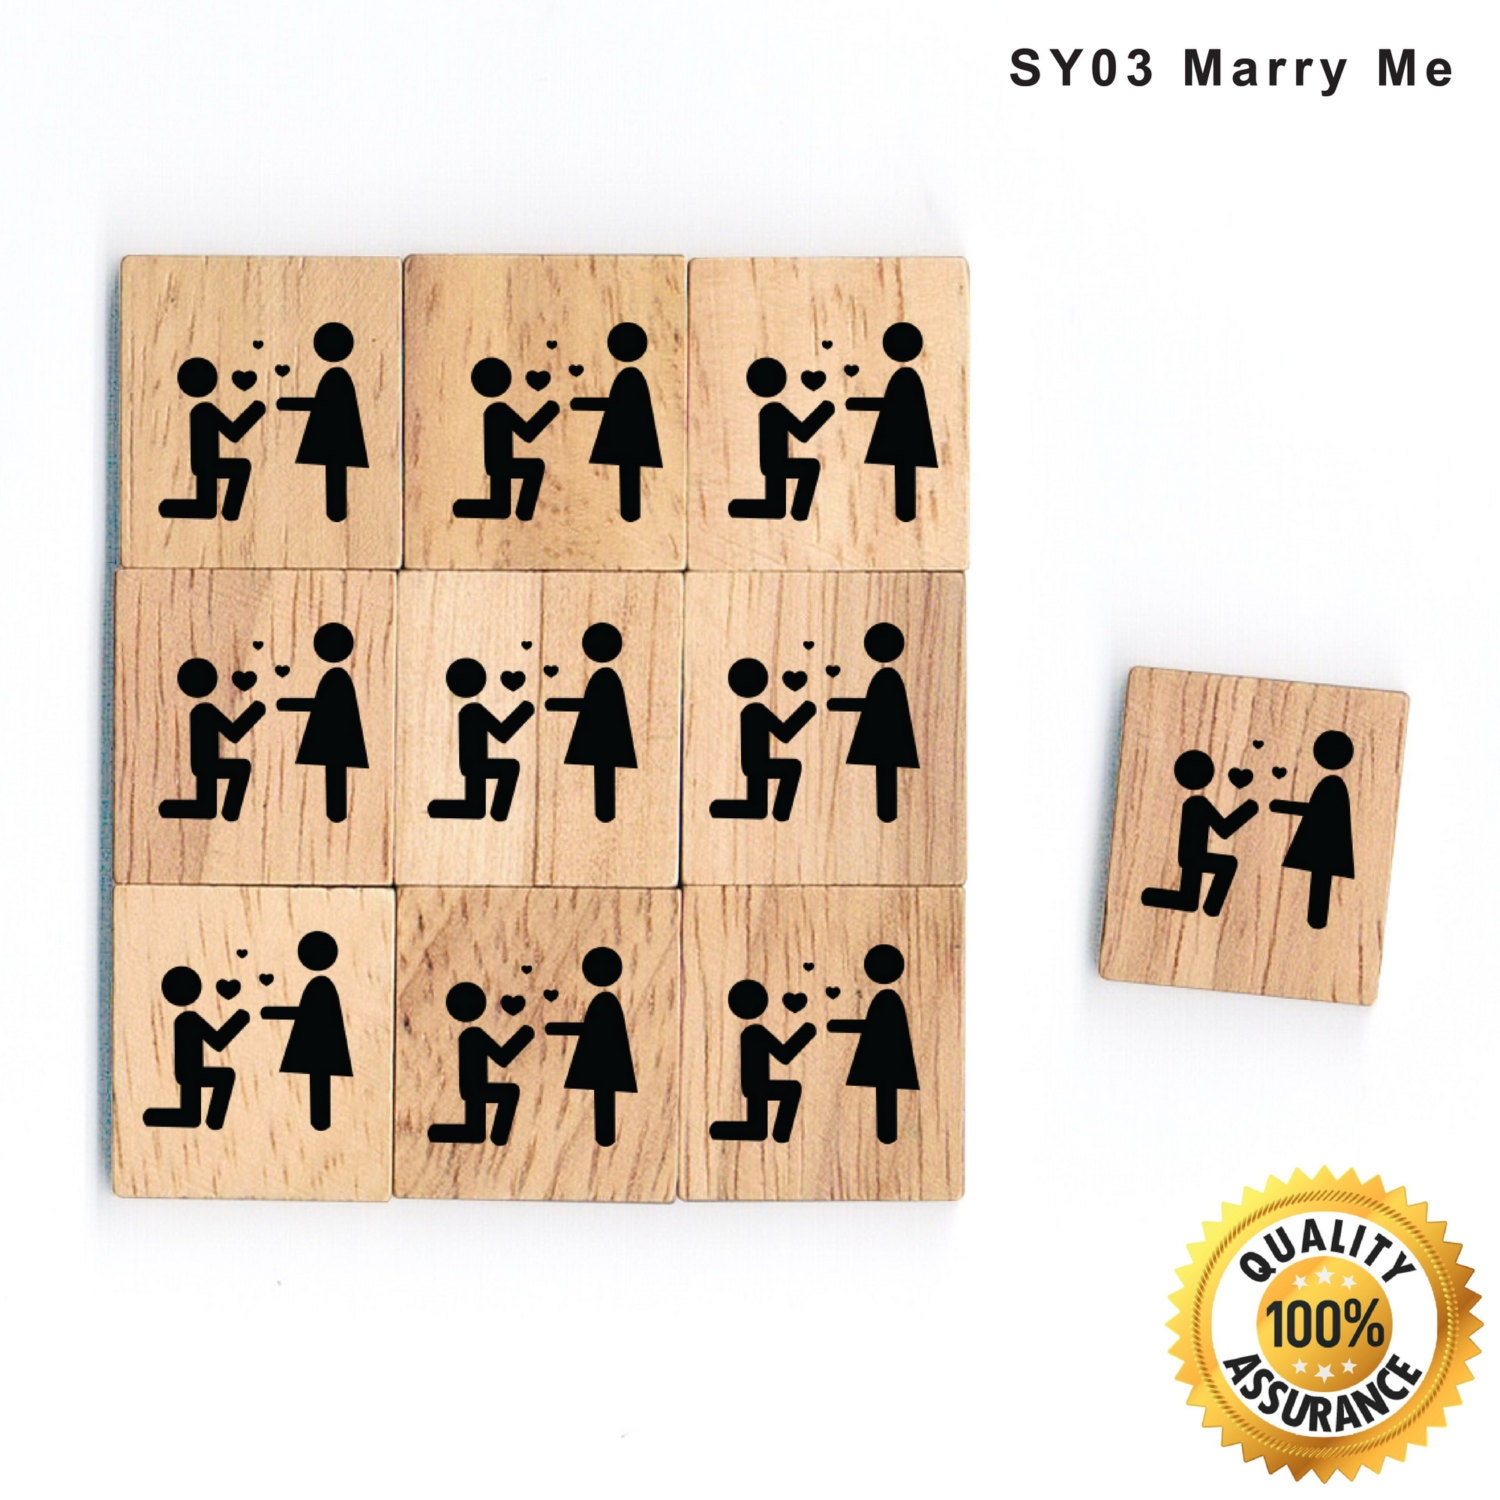 marry me wooden scrabble tiles symbol wedding by bsiribiz on etsy